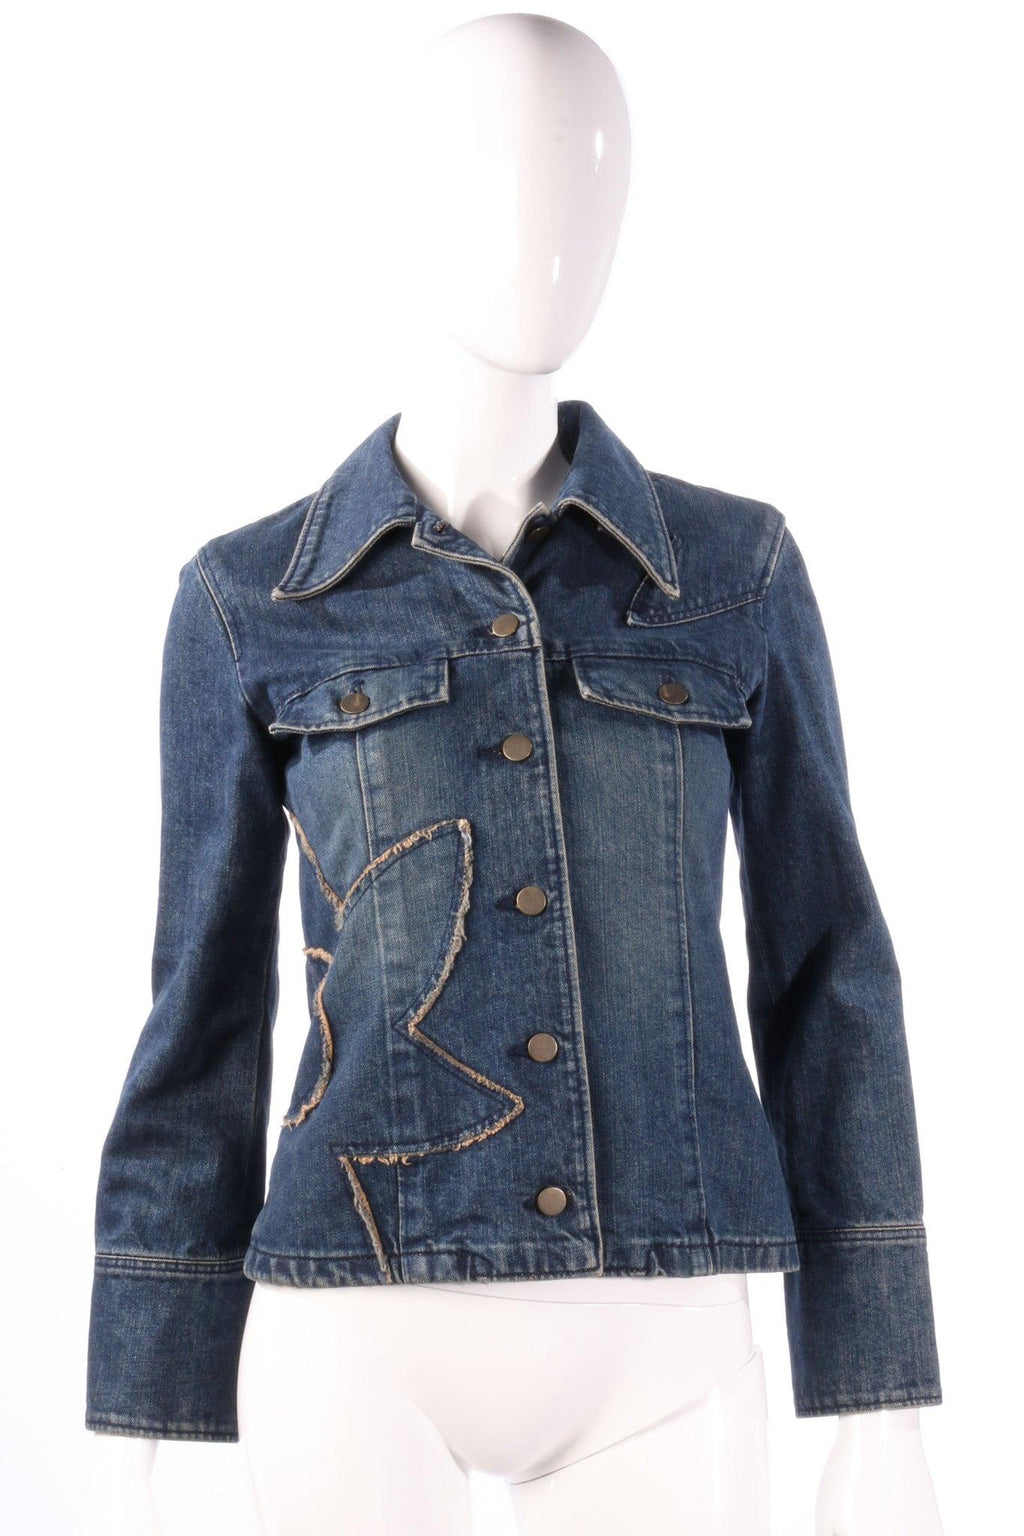 Parick Cox wanabe denim jacket